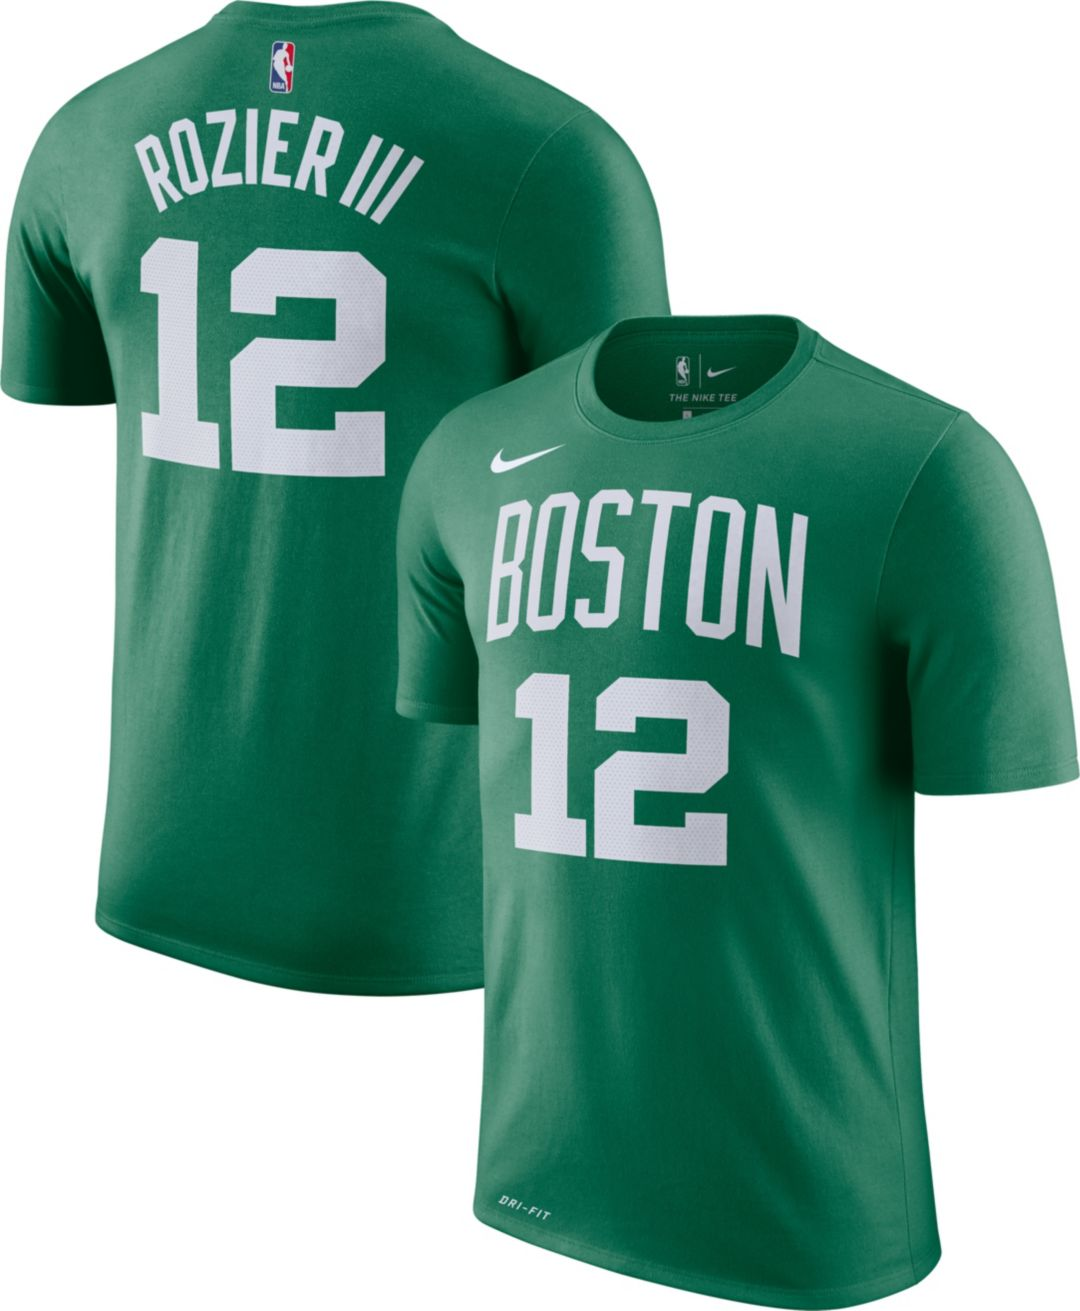 online store c6624 b8ebe Nike Men's Boston Celtics Terry Rozier #12 Dri-FIT Kelly Green T-Shirt